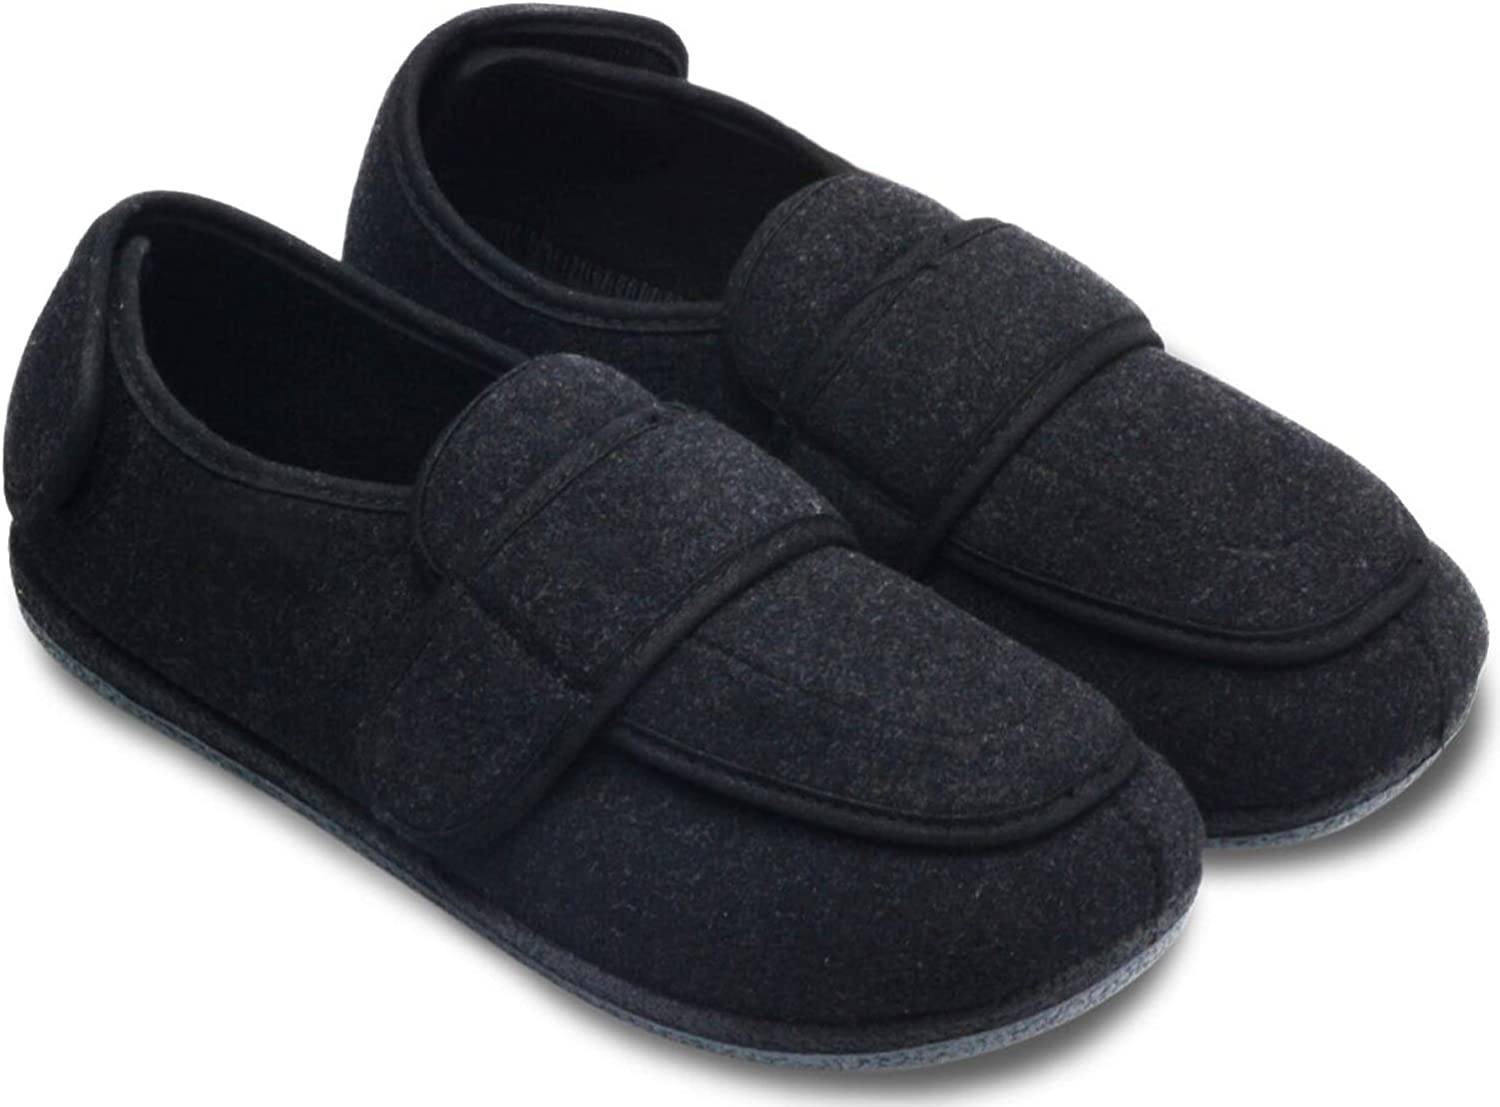 FAHOTE Men's Diabetic Slippers Extra